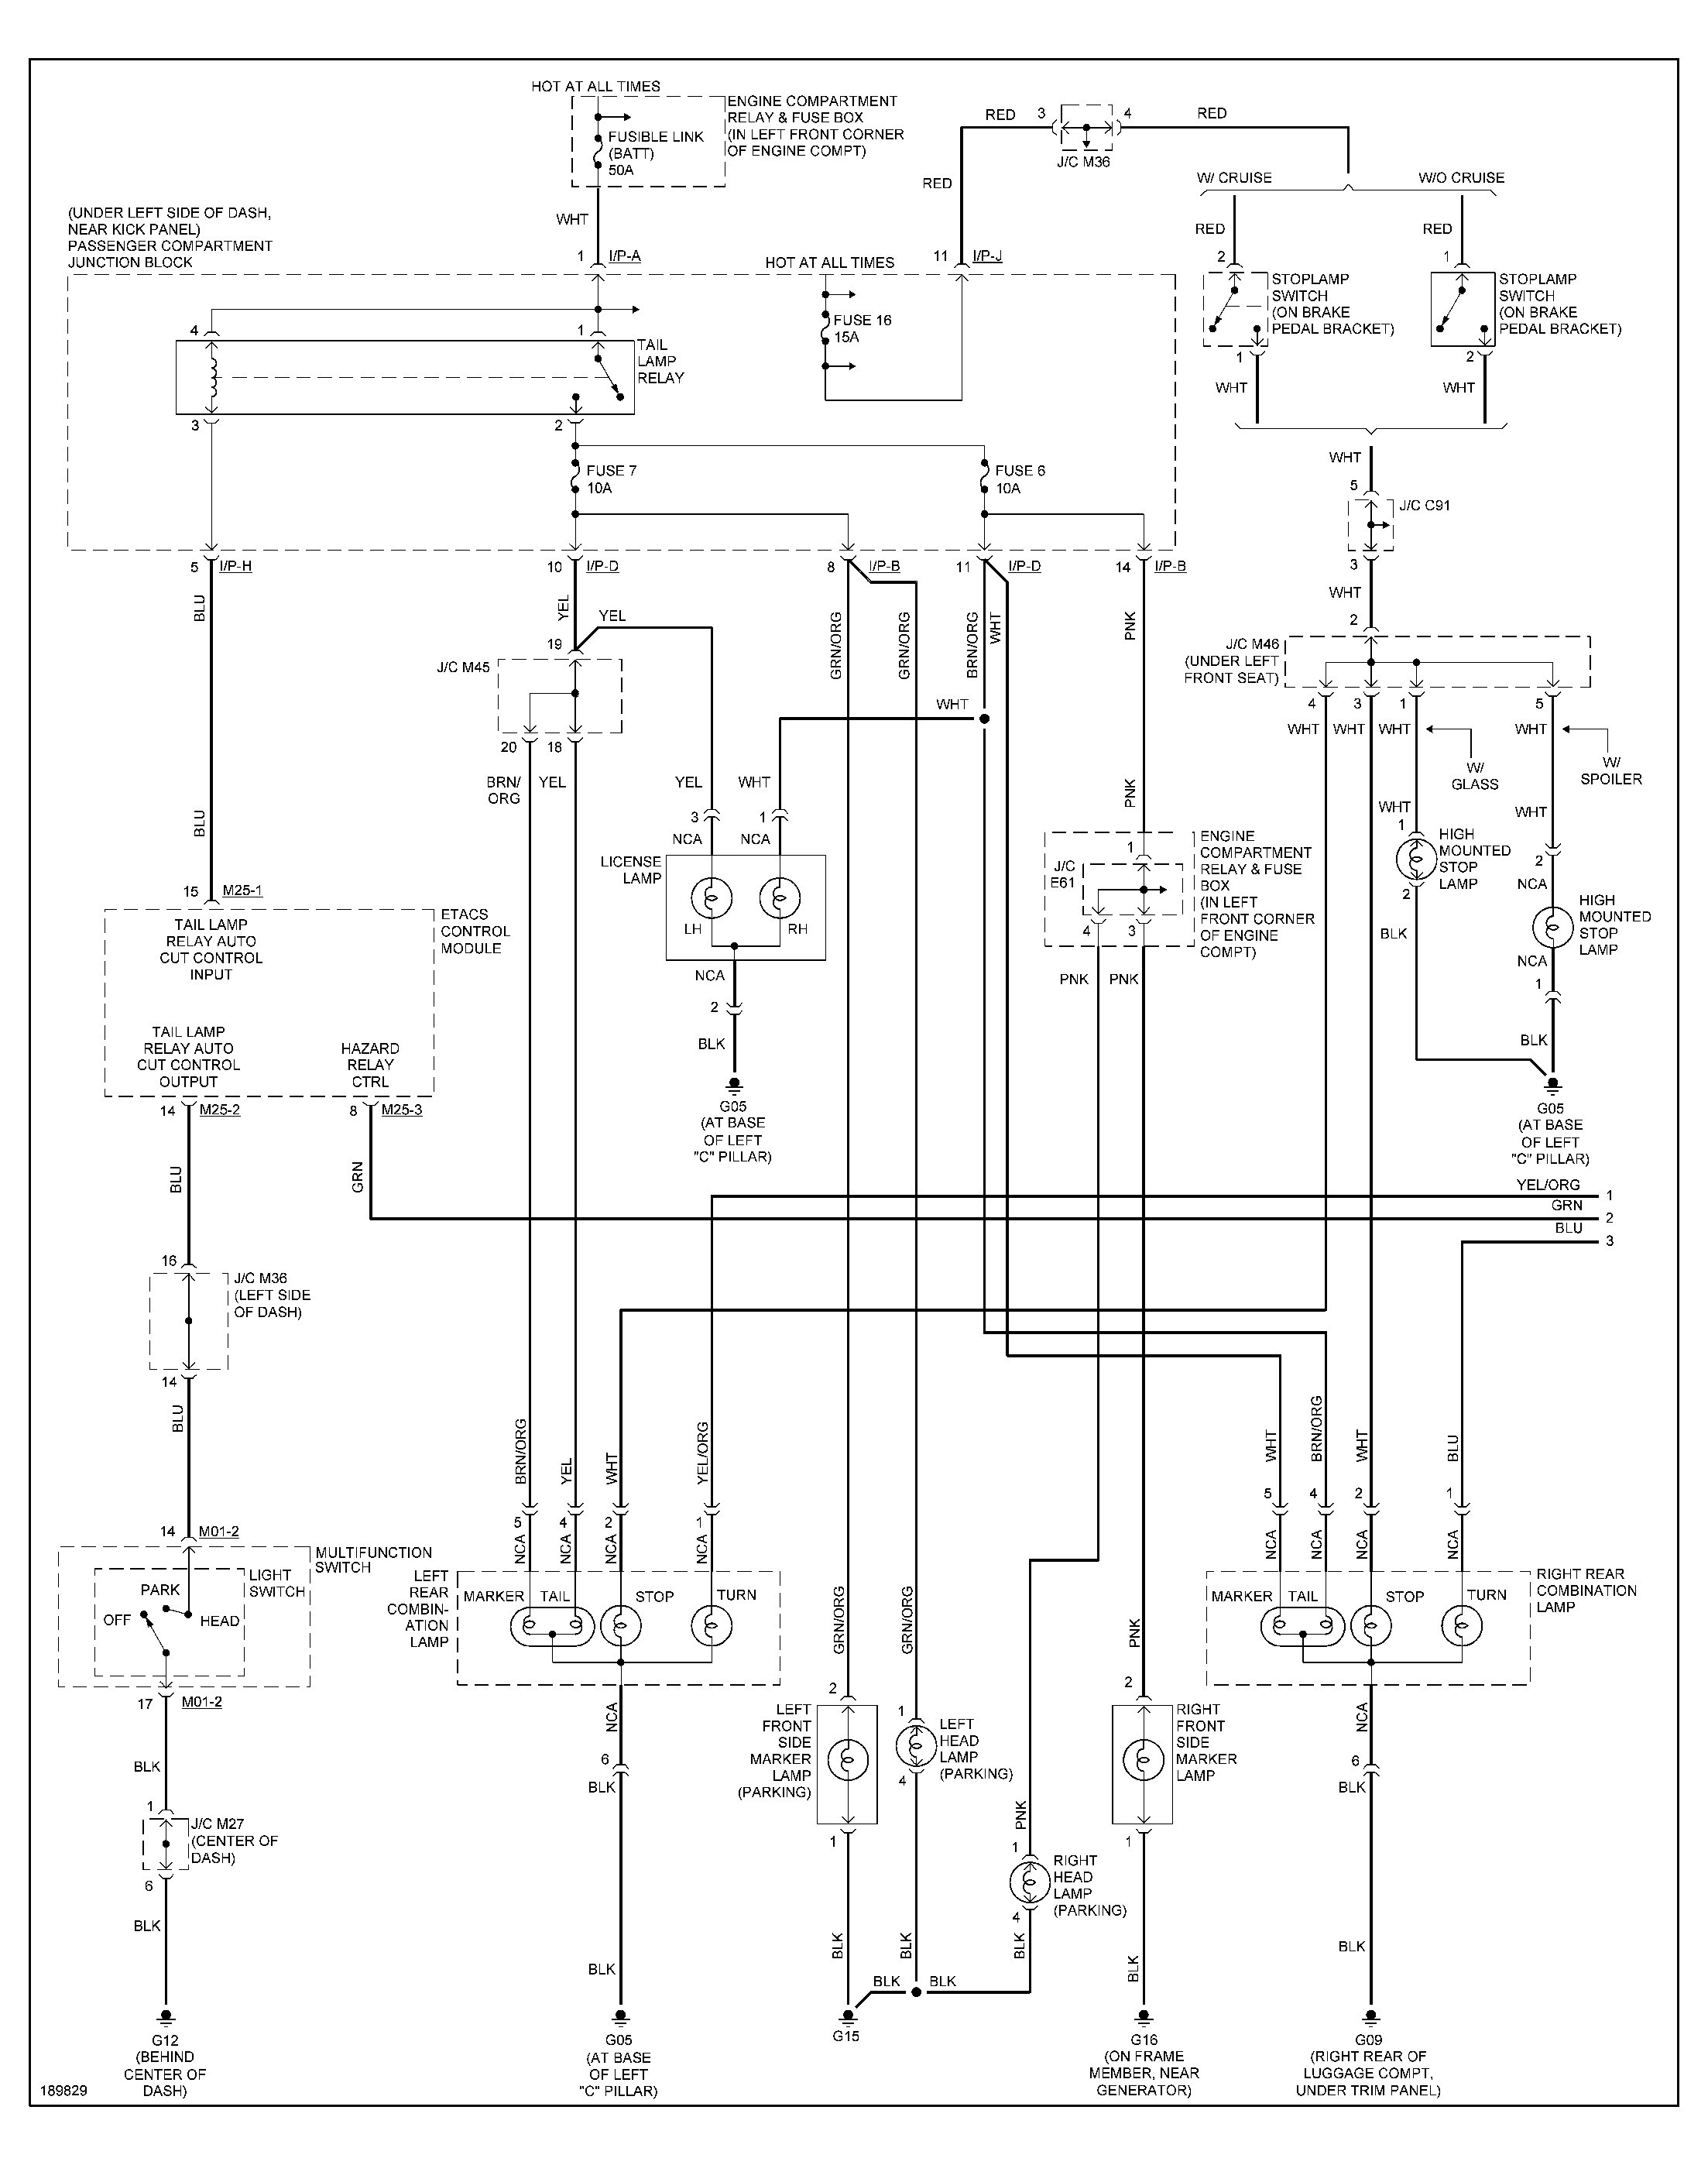 2005 hyundai accent wiring diagram - wiring diagram slow-data -  slow-data.disnar.it  disnar.it